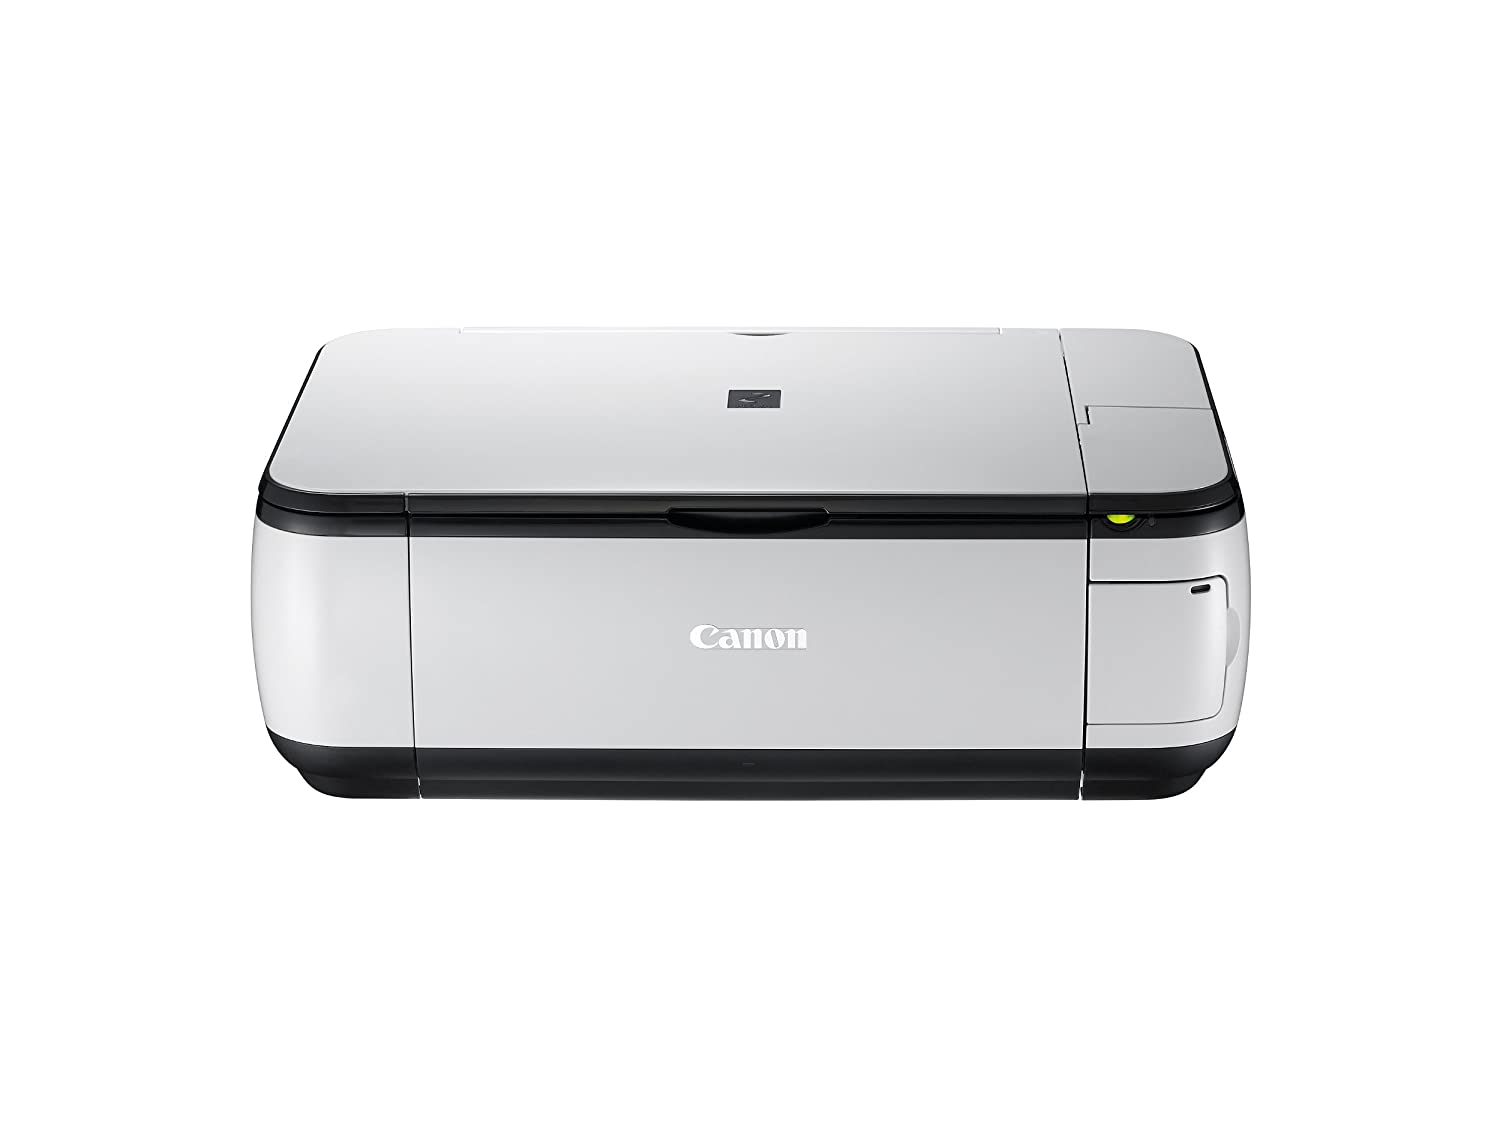 Amazon.com : Canon PIXMA MP490 Inkjet Photo All-In-One Printer (3745B002) :  Multifunction Office Machines : Electronics